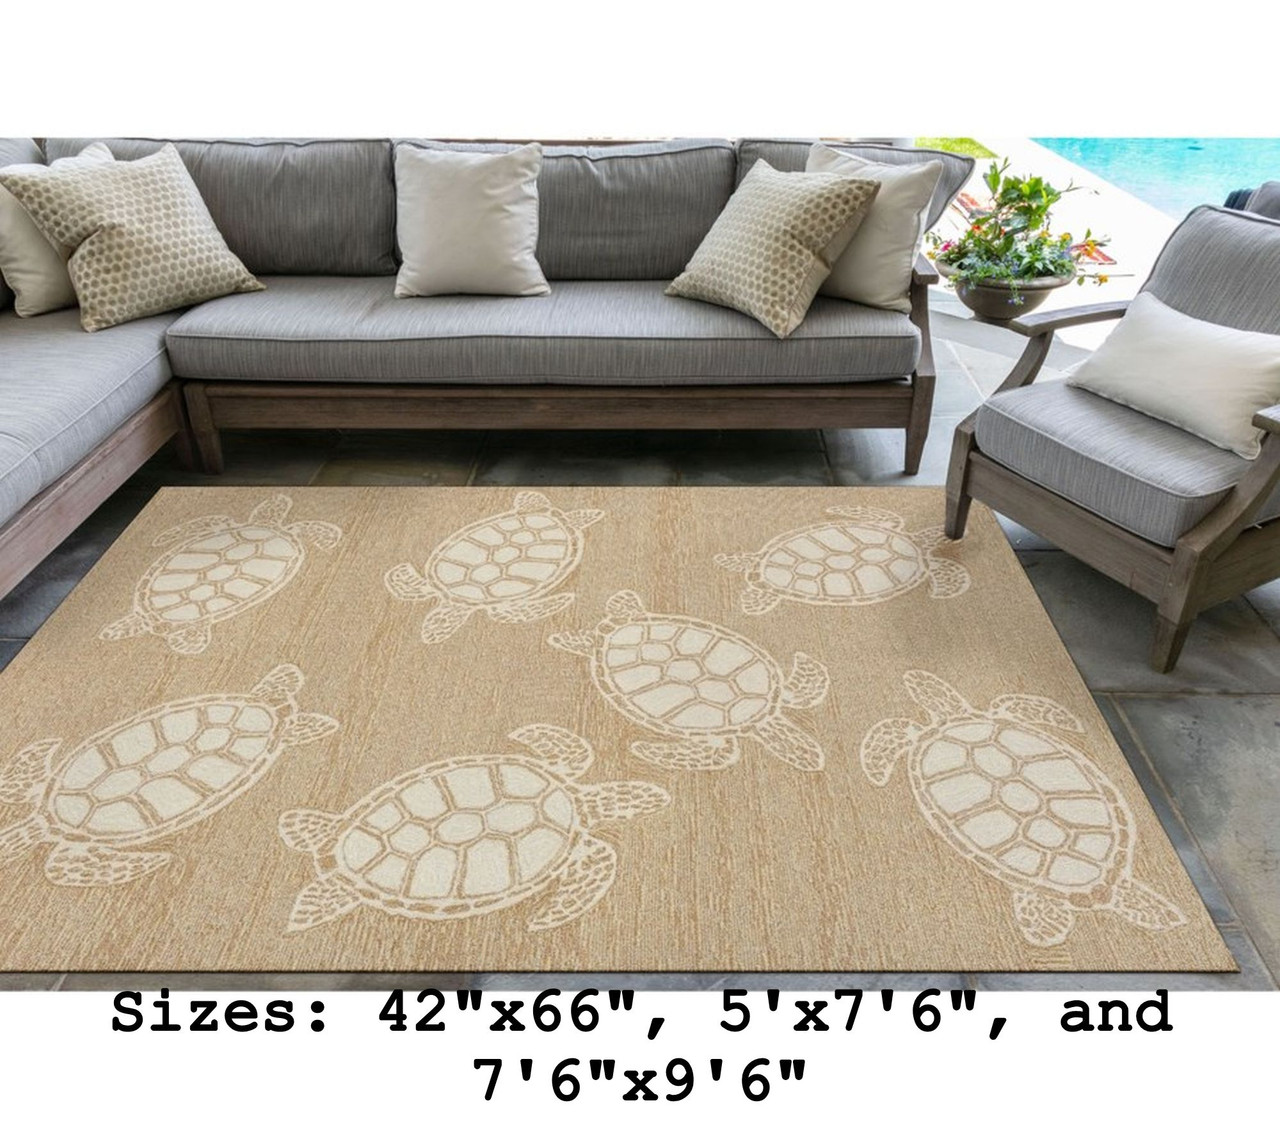 Capri Turtle Indoor/Outdoor Rug - Neutral - Large Rectangle Lifestyle